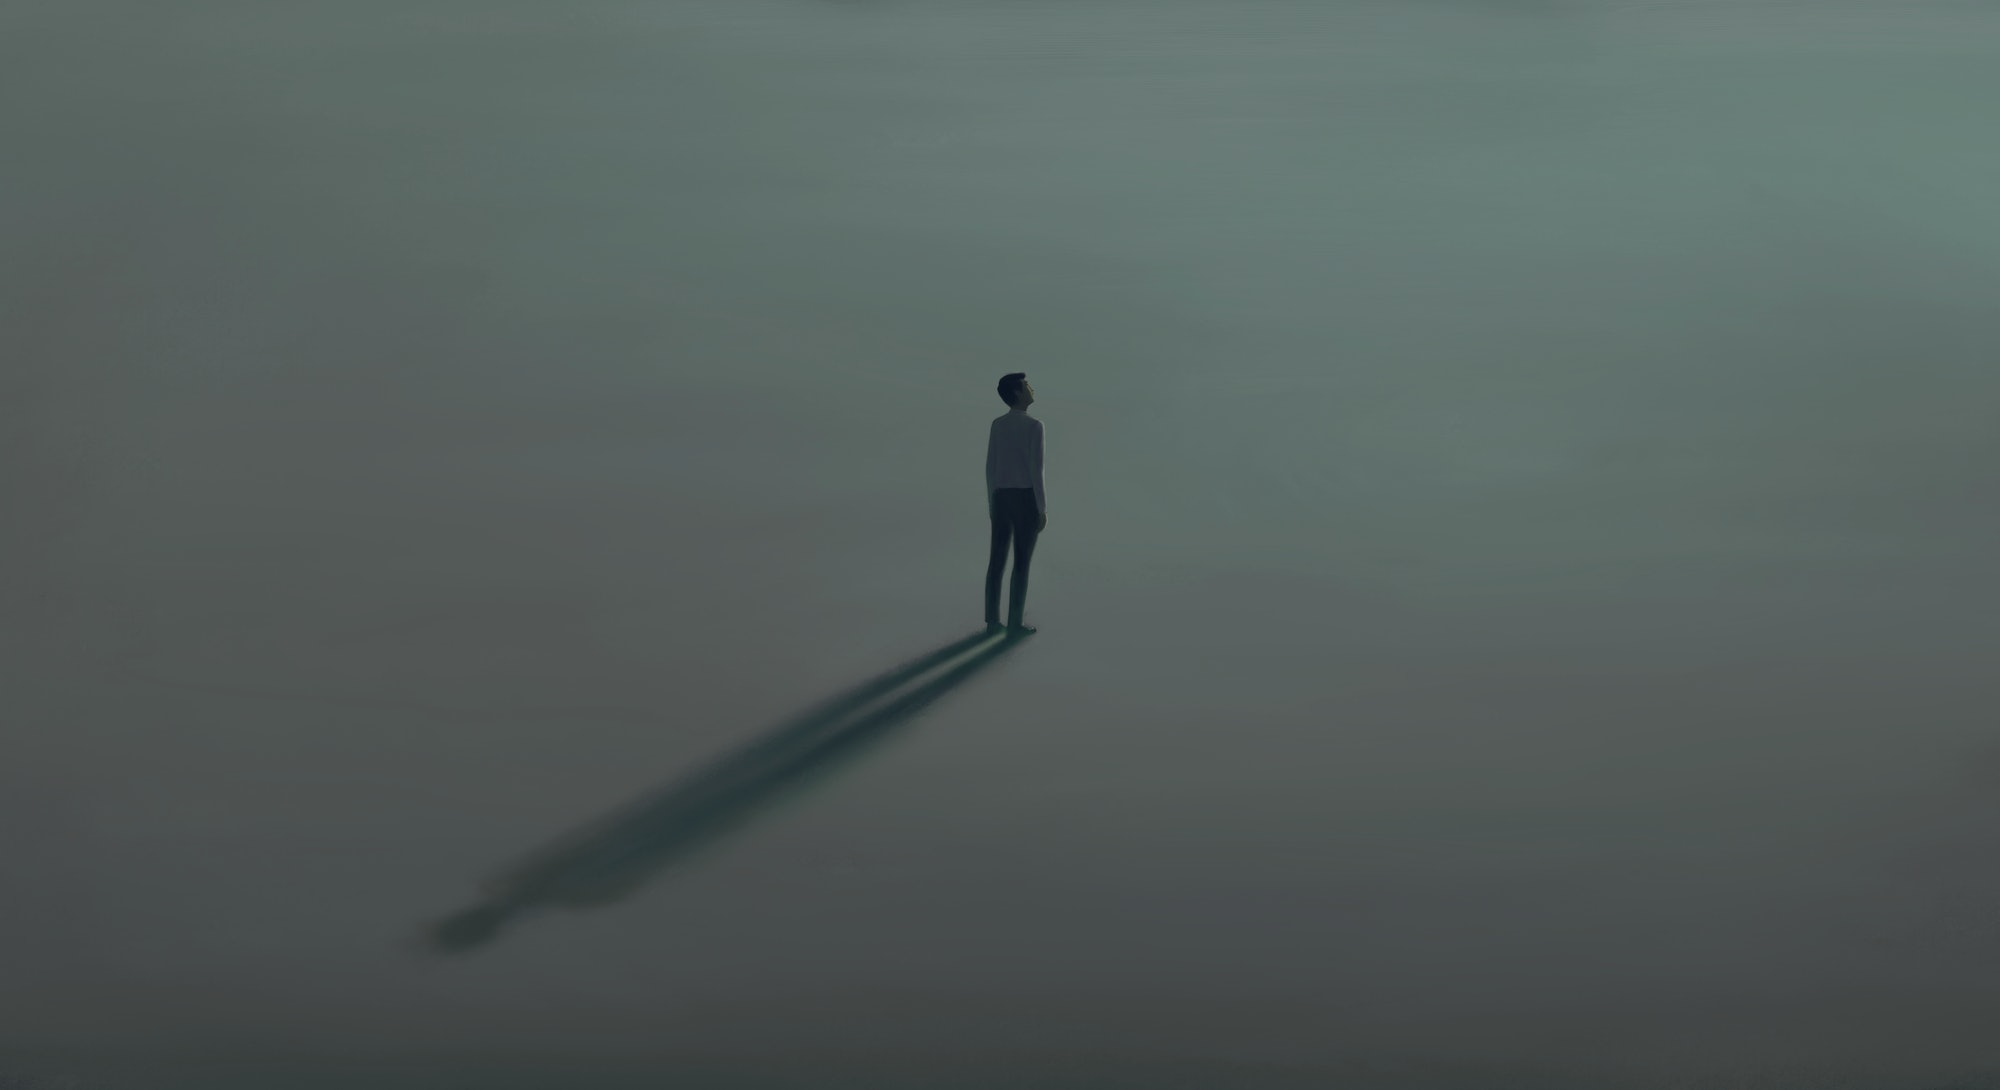 Man alone with the light. Surreal painting hope lonely and loneliness concept. minimal illustration